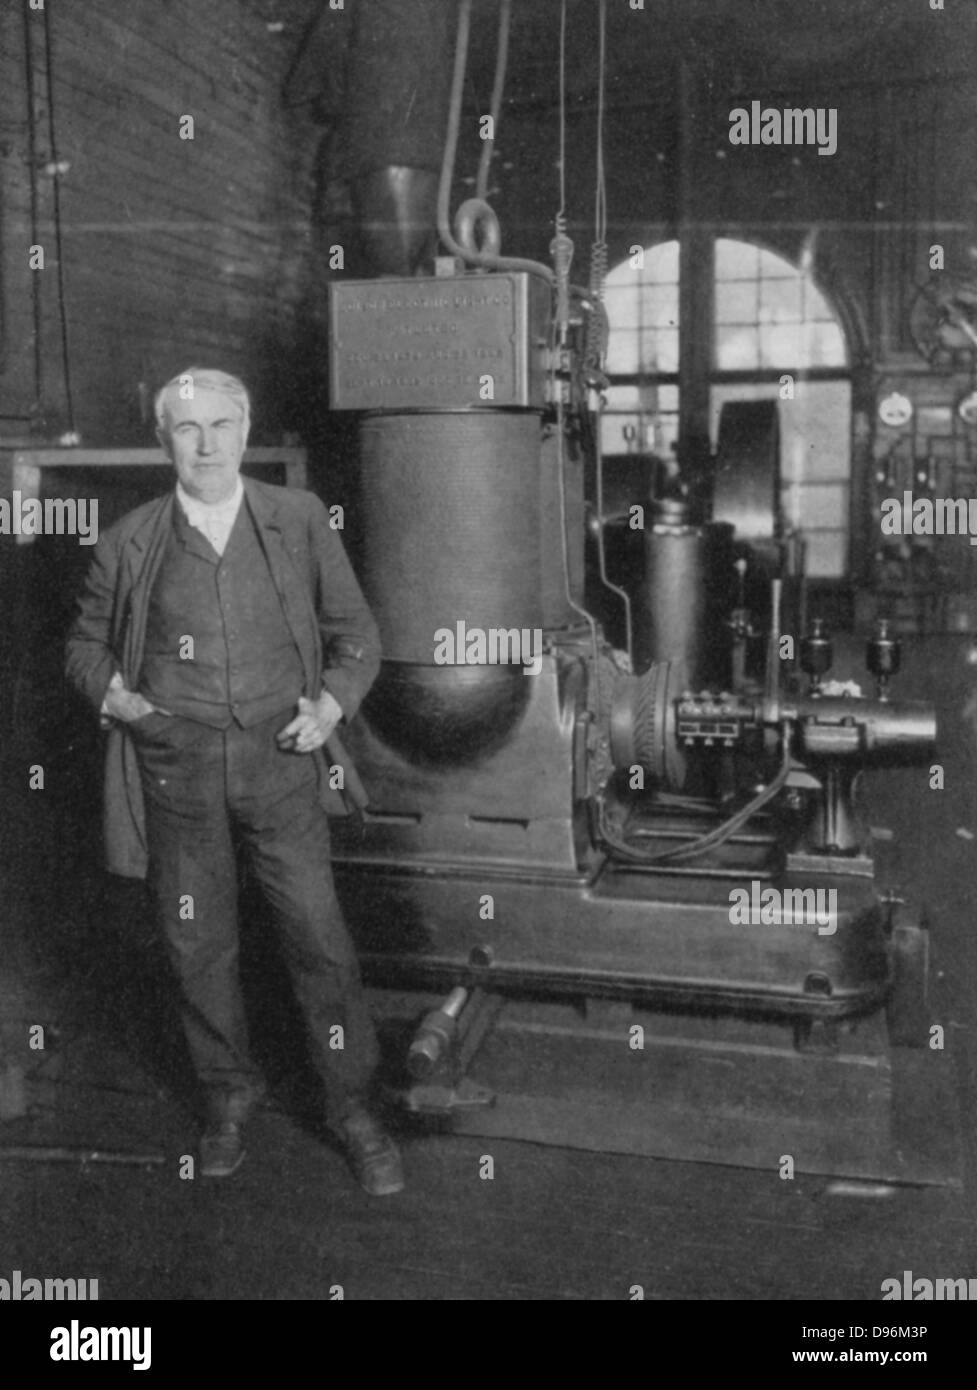 Thomas Alva Edison (1847-1931) American inventor, with his first dynamo for producing electric light. - Stock Image